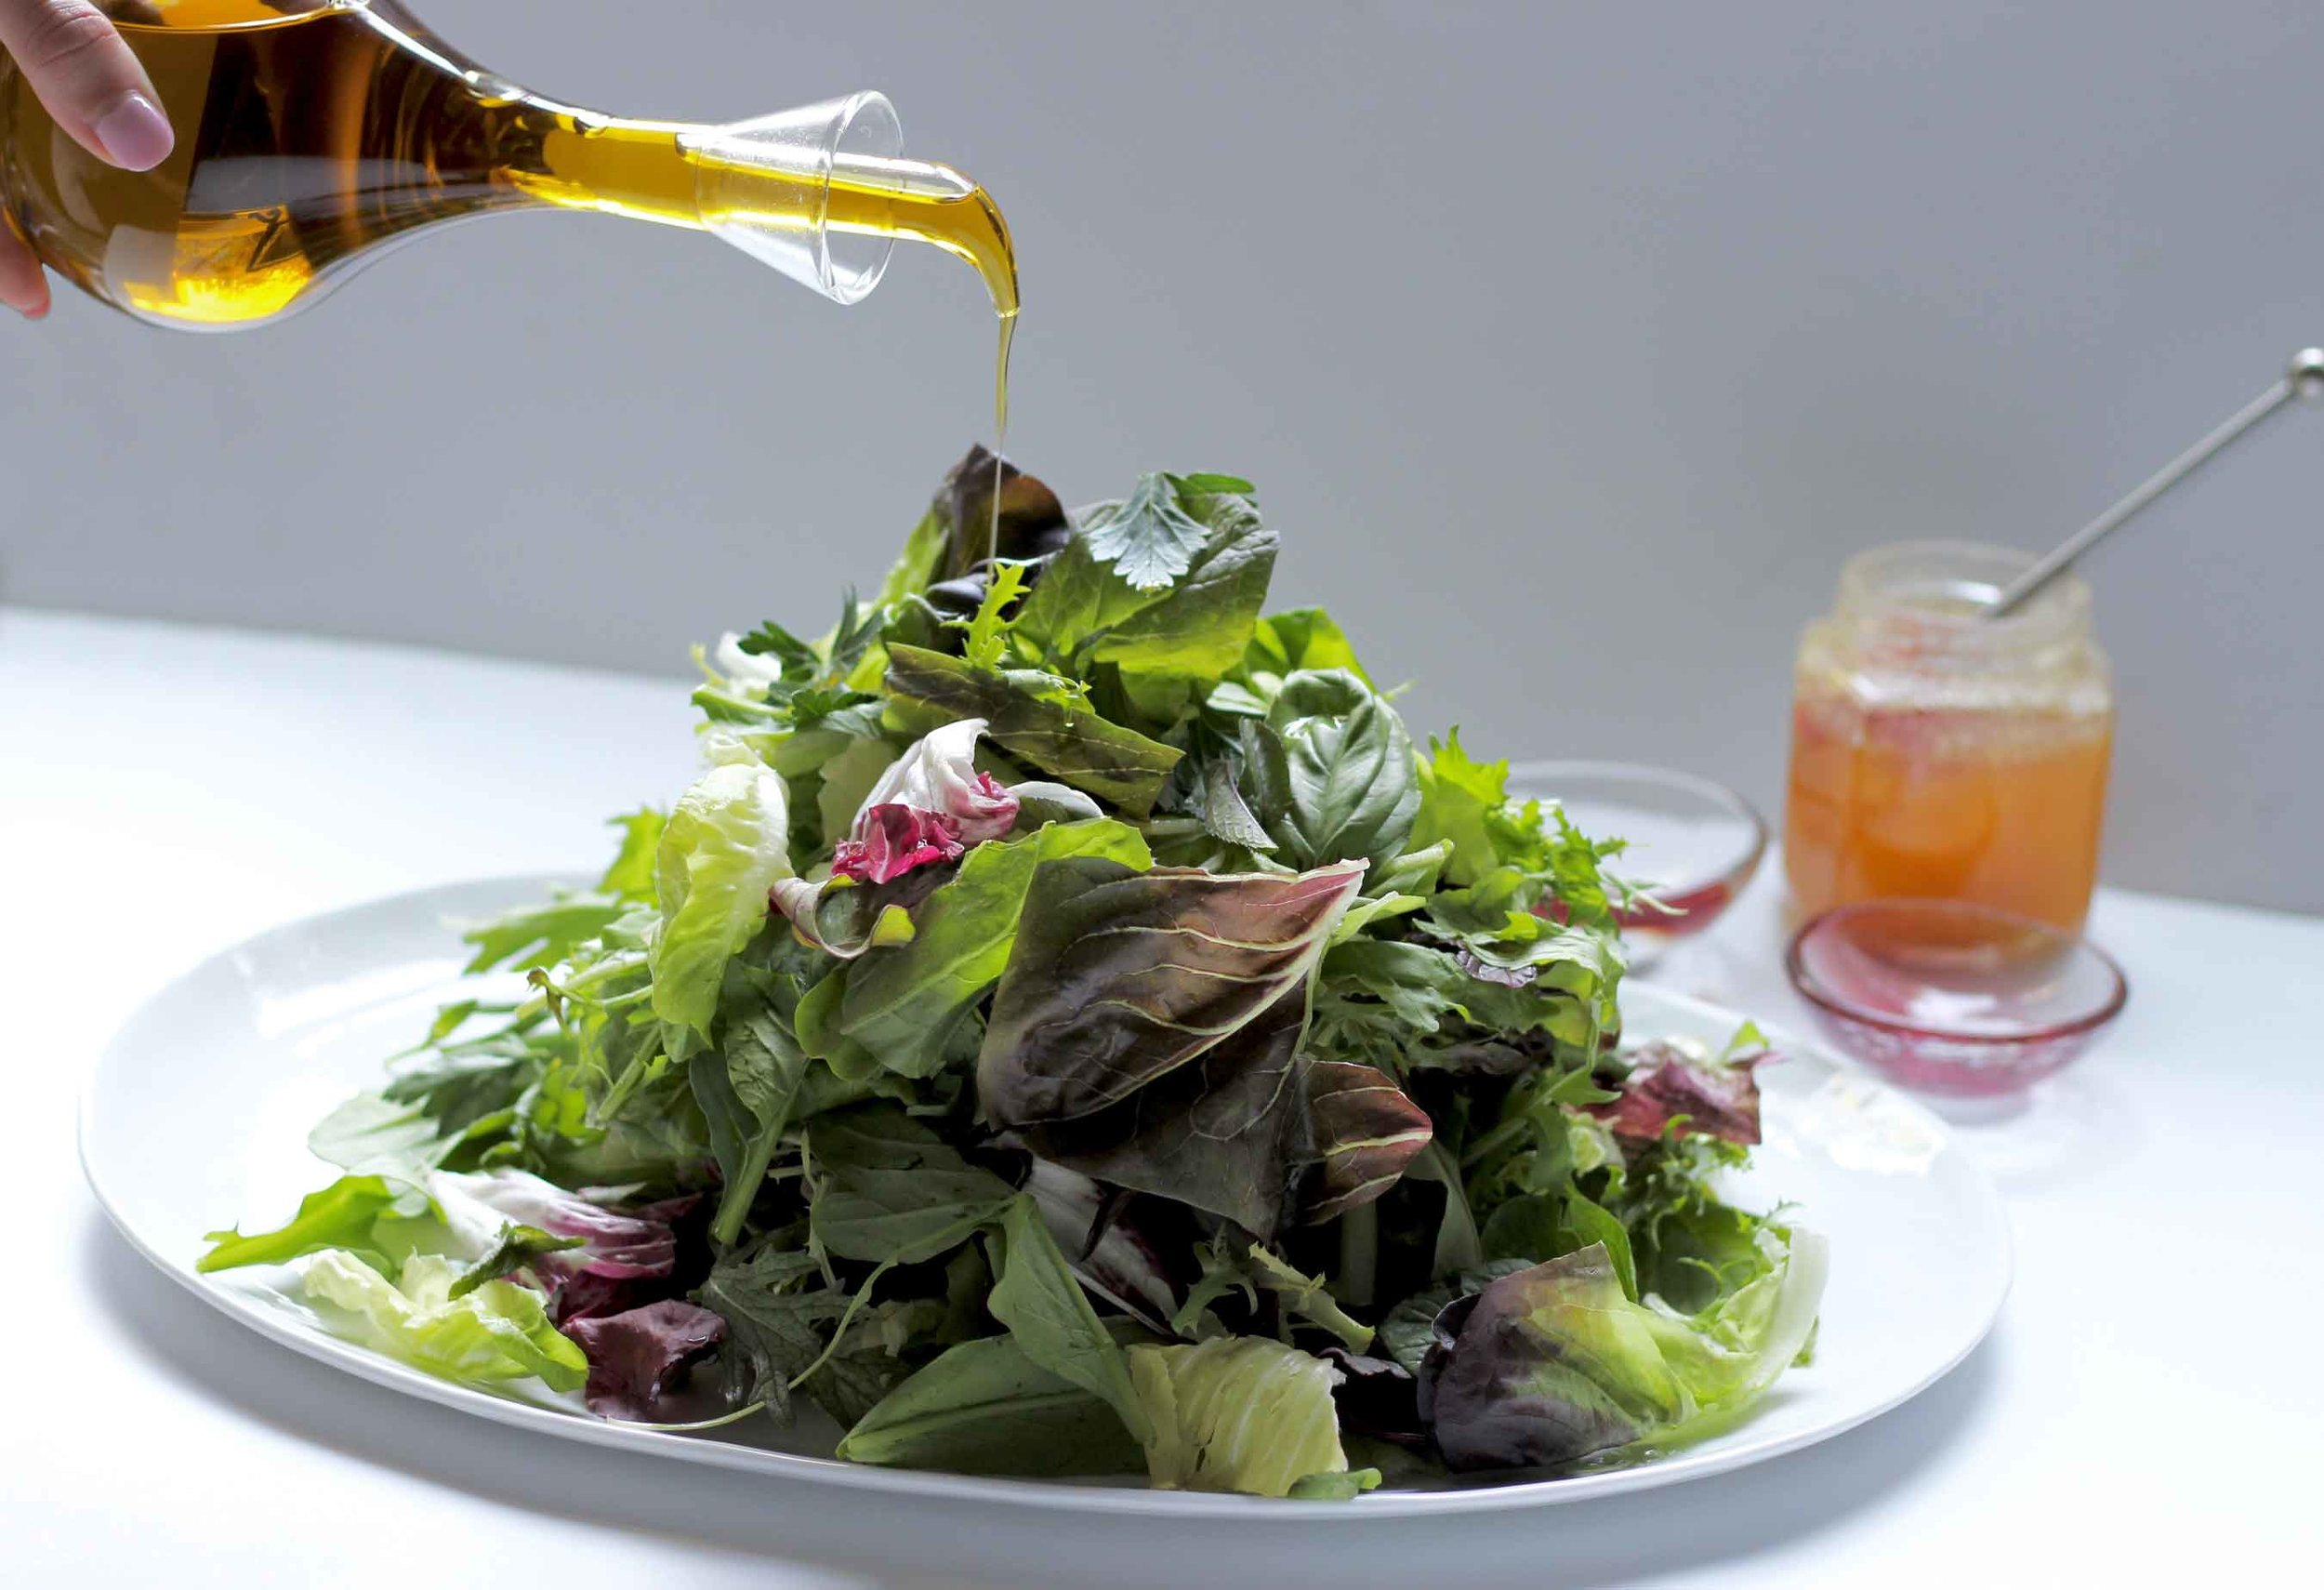 Pouring our best olive oil on a salad of red butter lettuce, treviso, and little gems with fresh basil, mint and cilantro.